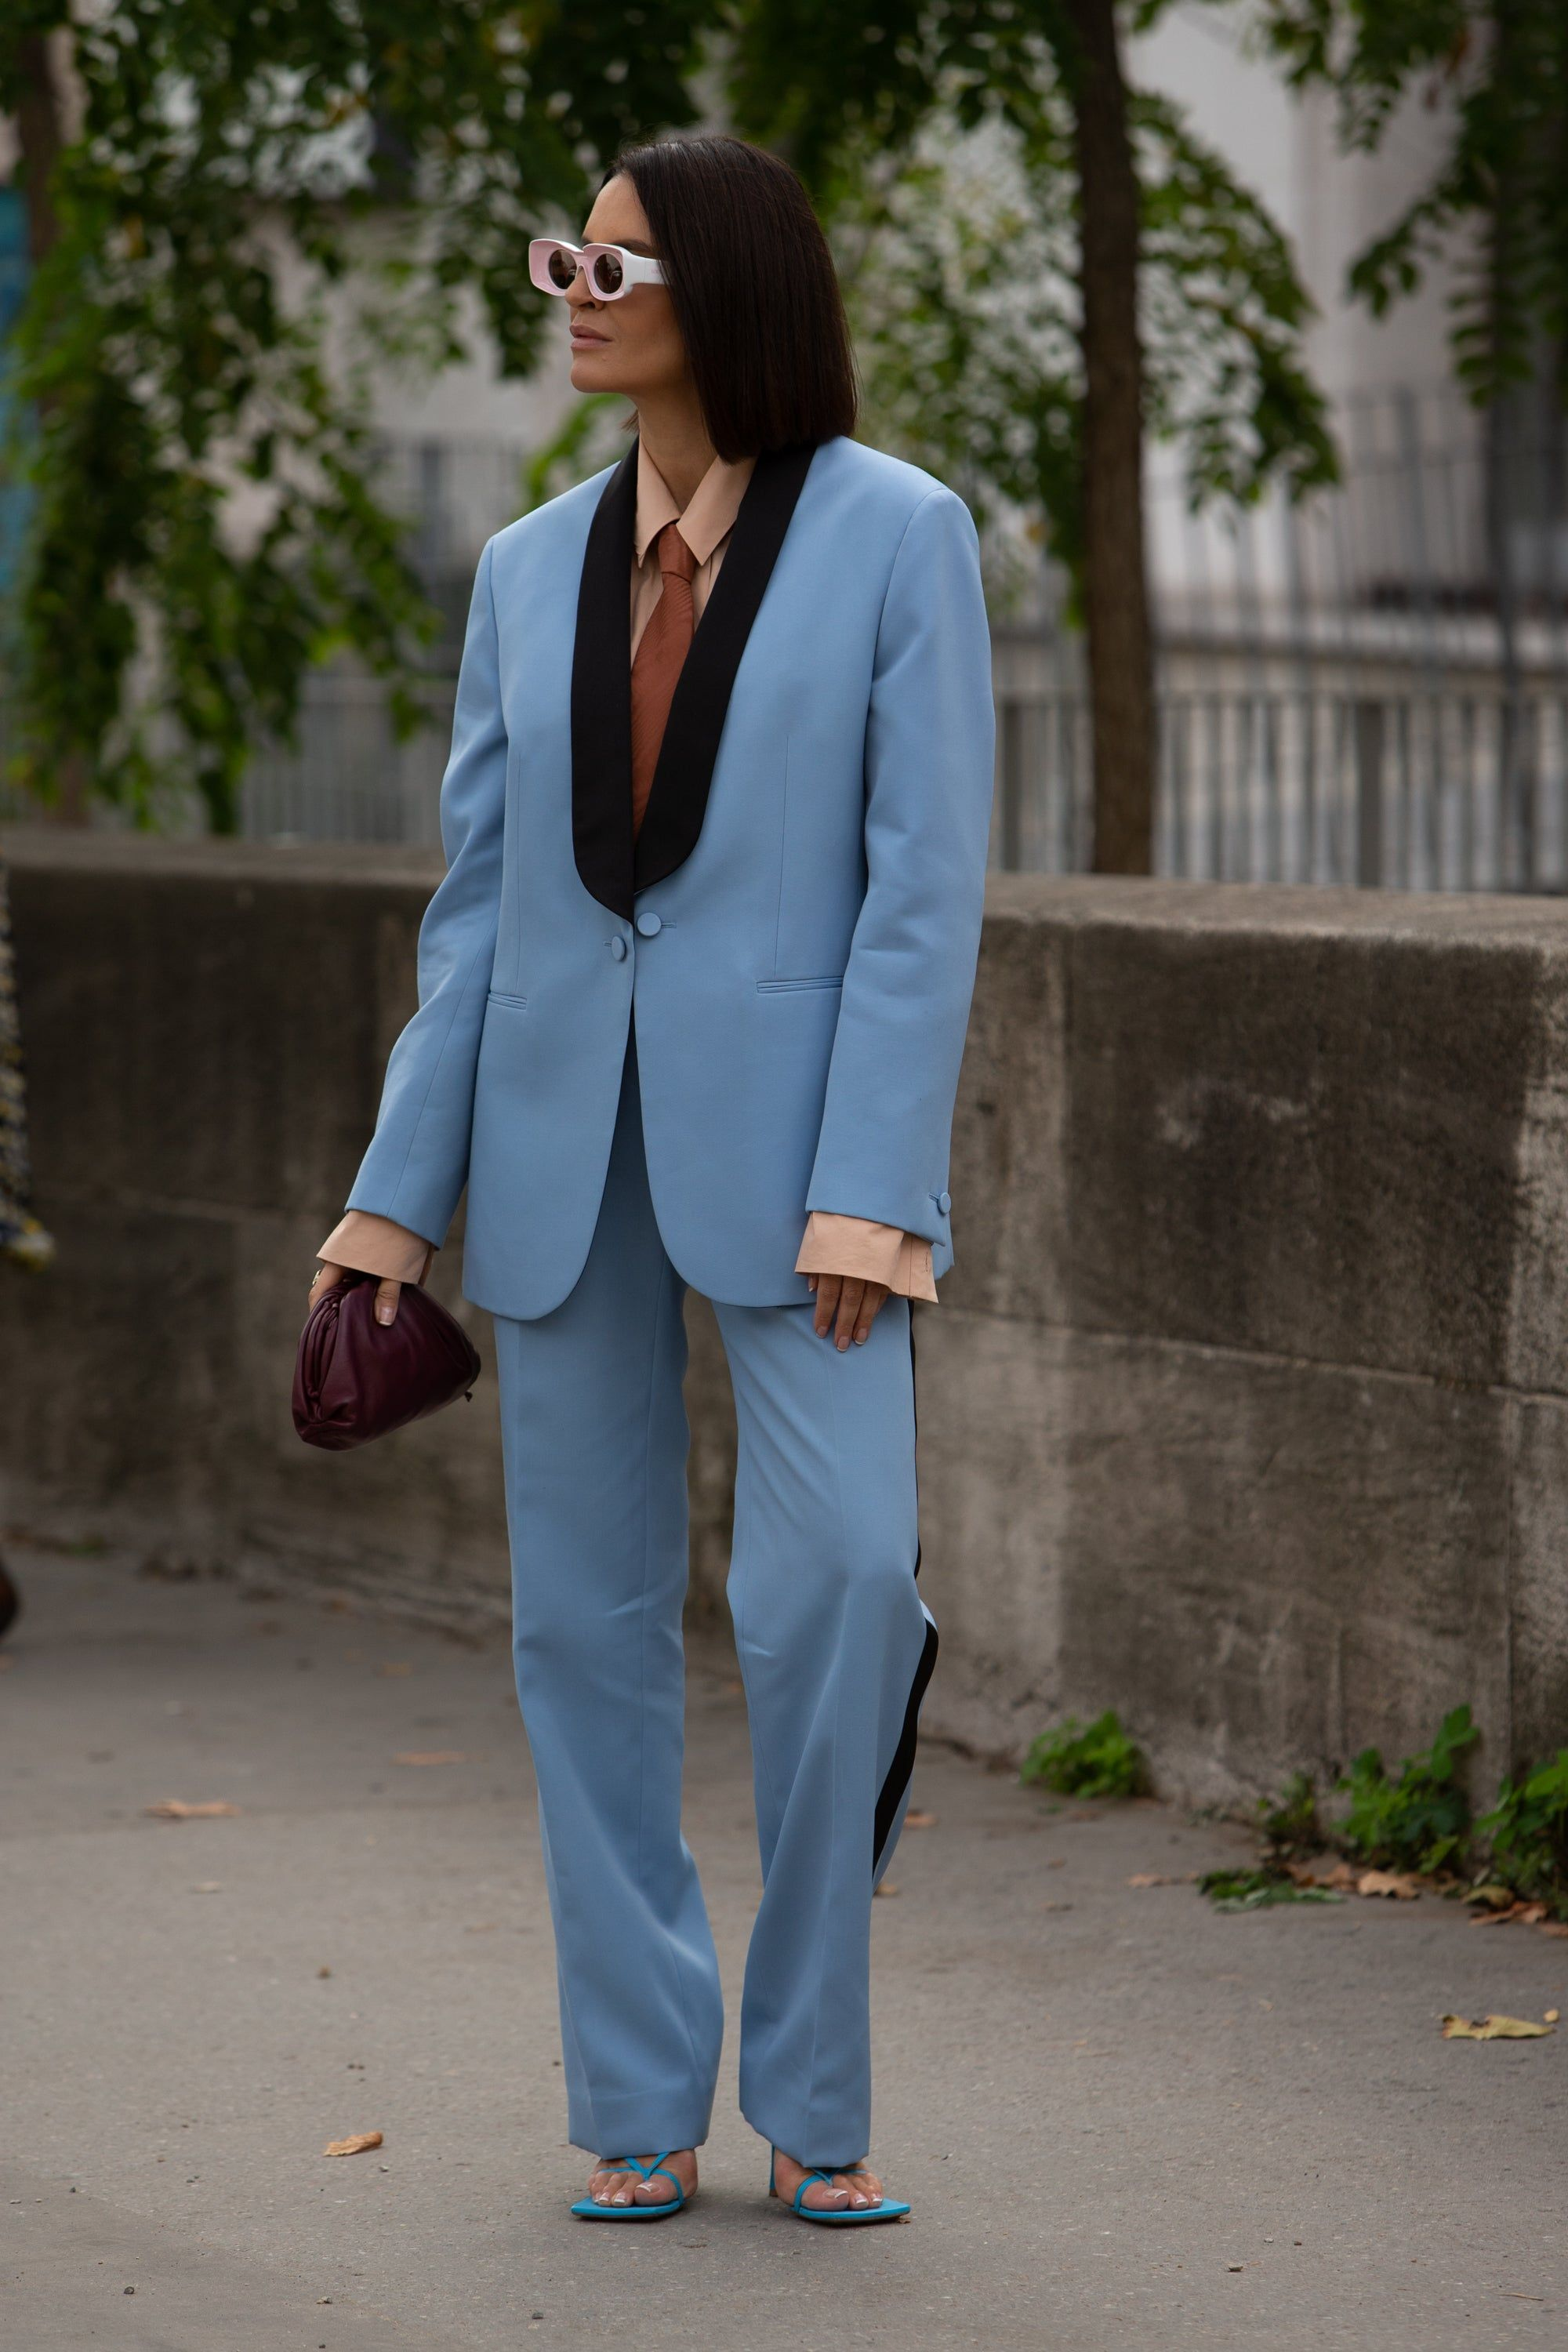 , The Best Paris Street Style At Fashion Week, My Pop Star Kda Blog, My Pop Star Kda Blog